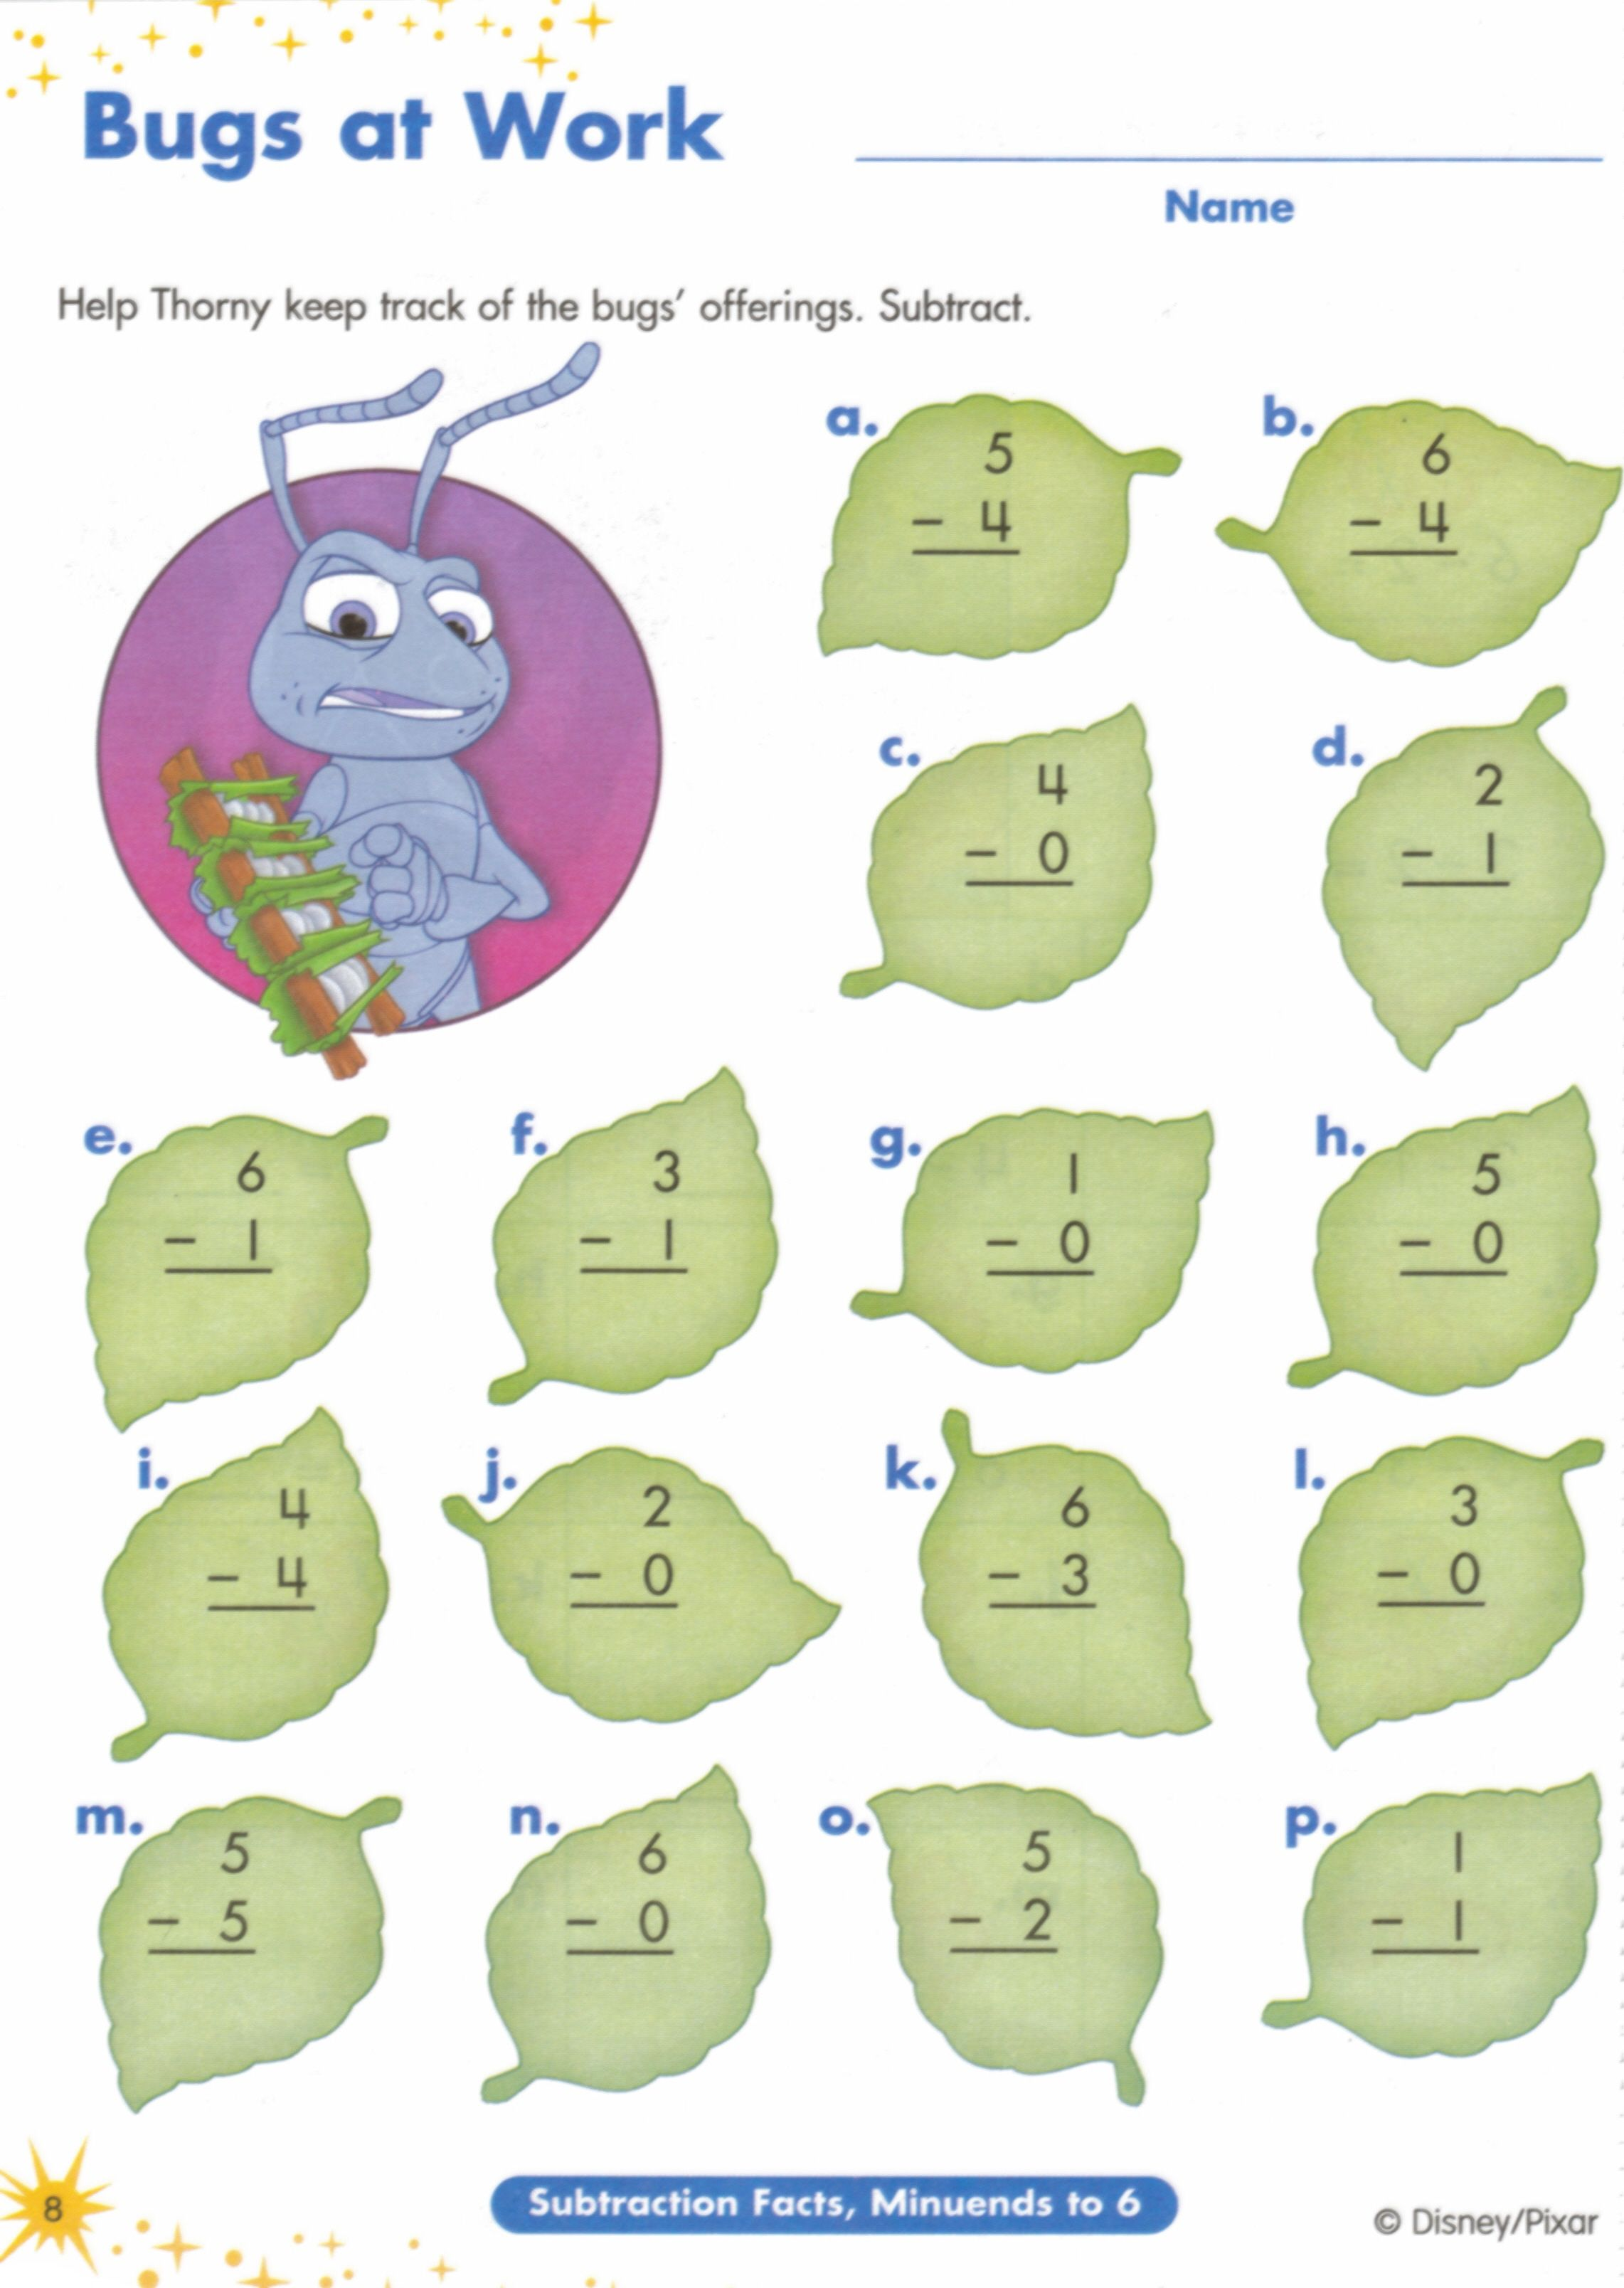 Proatmealus  Personable  Images About Worksheets On Pinterest  Fun Facts For Kids  With Glamorous  Images About Worksheets On Pinterest  Fun Facts For Kids Earth Day Worksheets And Jungles With Beautiful Alphabet Writing Worksheets For Kindergarten Also Subtraction Using Number Line Worksheets In Addition Preschool Grammar Worksheets And Free Maths Worksheets For Year  As Well As Number Counting Worksheets For Kindergarten Additionally Writing Worksheets Ks From Pinterestcom With Proatmealus  Glamorous  Images About Worksheets On Pinterest  Fun Facts For Kids  With Beautiful  Images About Worksheets On Pinterest  Fun Facts For Kids Earth Day Worksheets And Jungles And Personable Alphabet Writing Worksheets For Kindergarten Also Subtraction Using Number Line Worksheets In Addition Preschool Grammar Worksheets From Pinterestcom